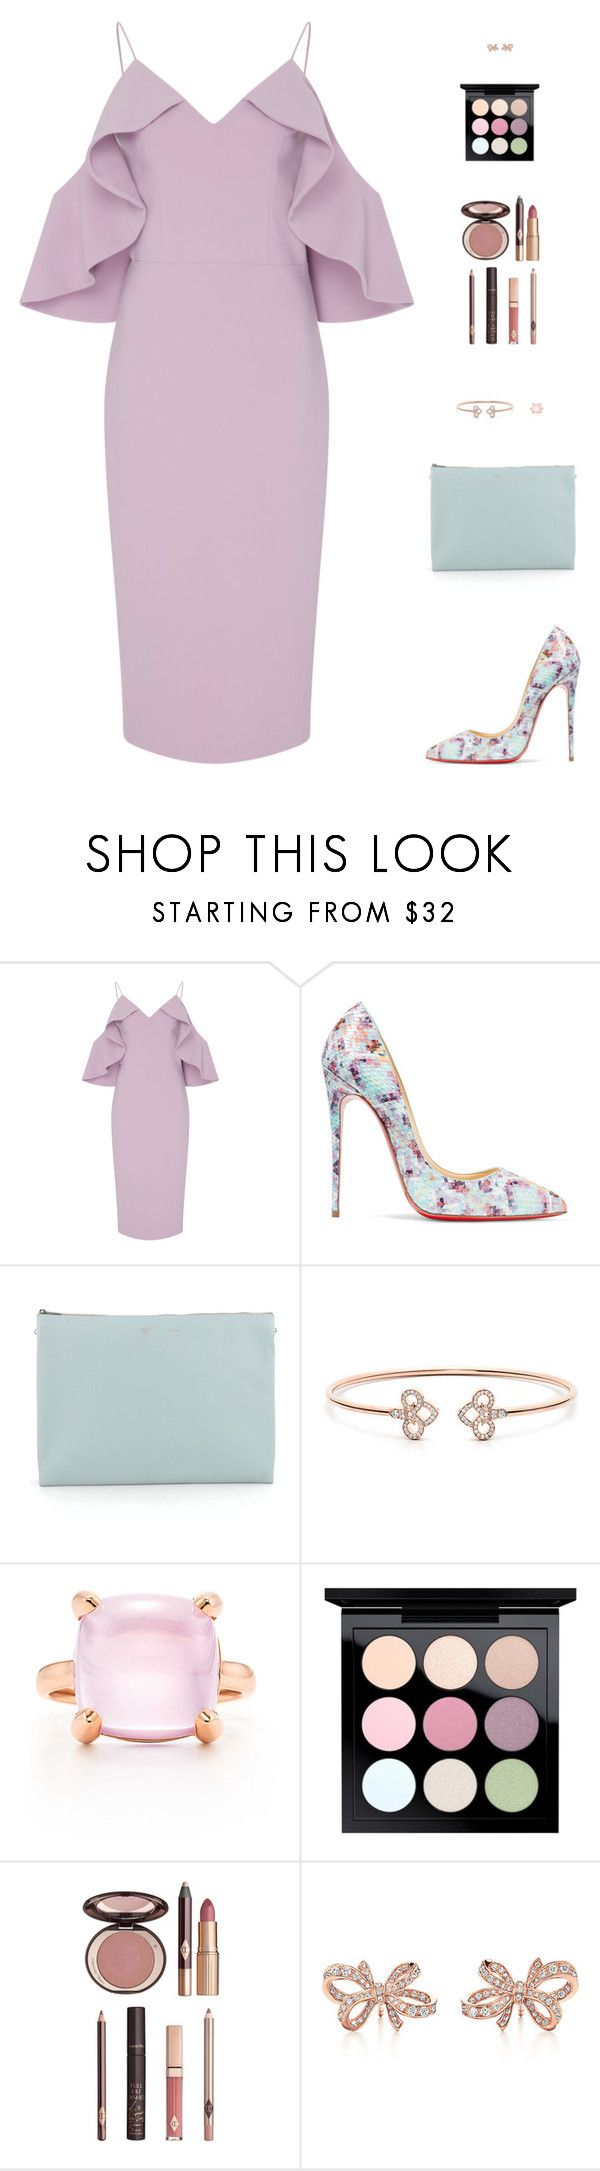 """Untitled #5008"" by mdmsb on Polyvore featuring Christian Siriano, Christian Louboutin, CÉLINE, Tiffany & Co., MAC Cosmetics and Charlotte Tilbury"